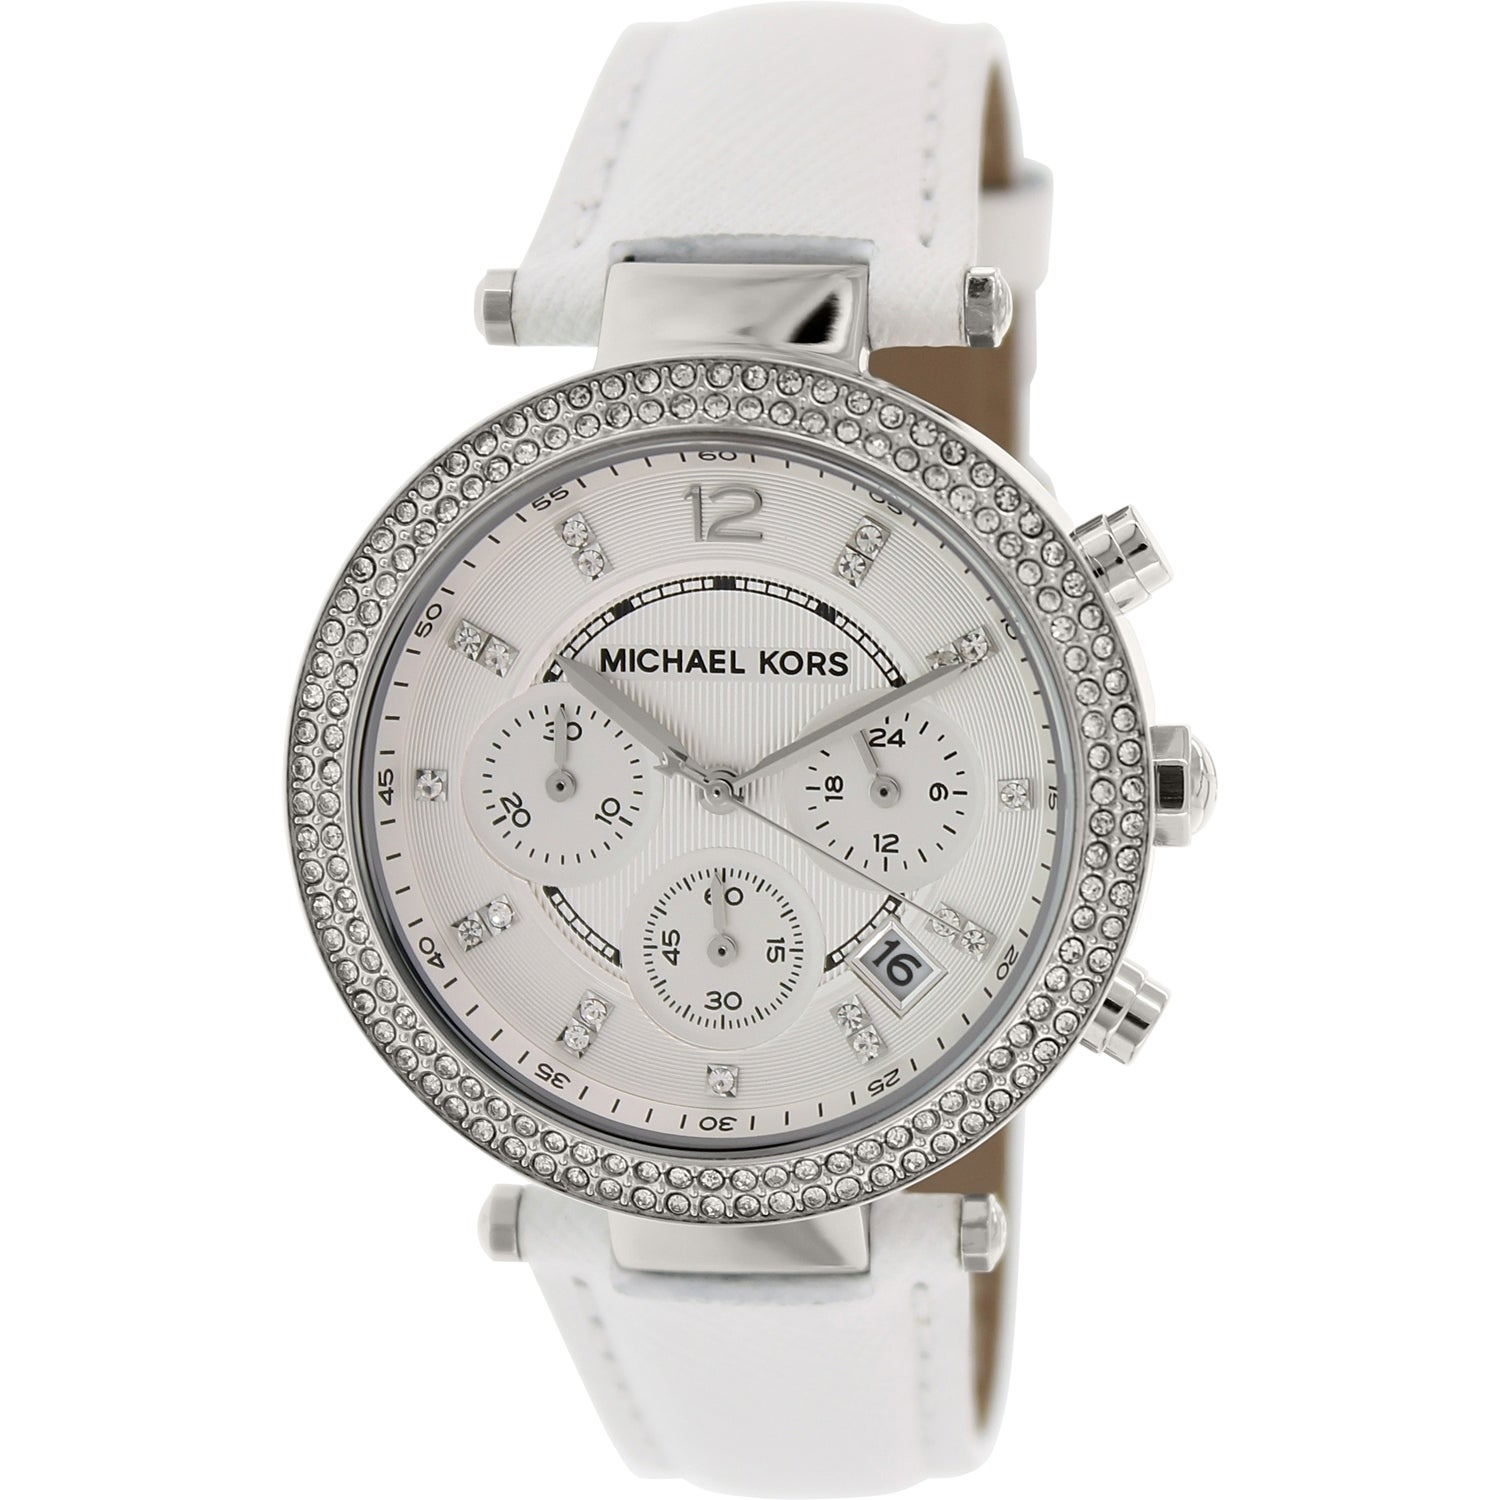 be762af04951 Shop Michael Kors Women s Parker White Leather Quartz Fashion Watch - Free  Shipping Today - Overstock - 18794345